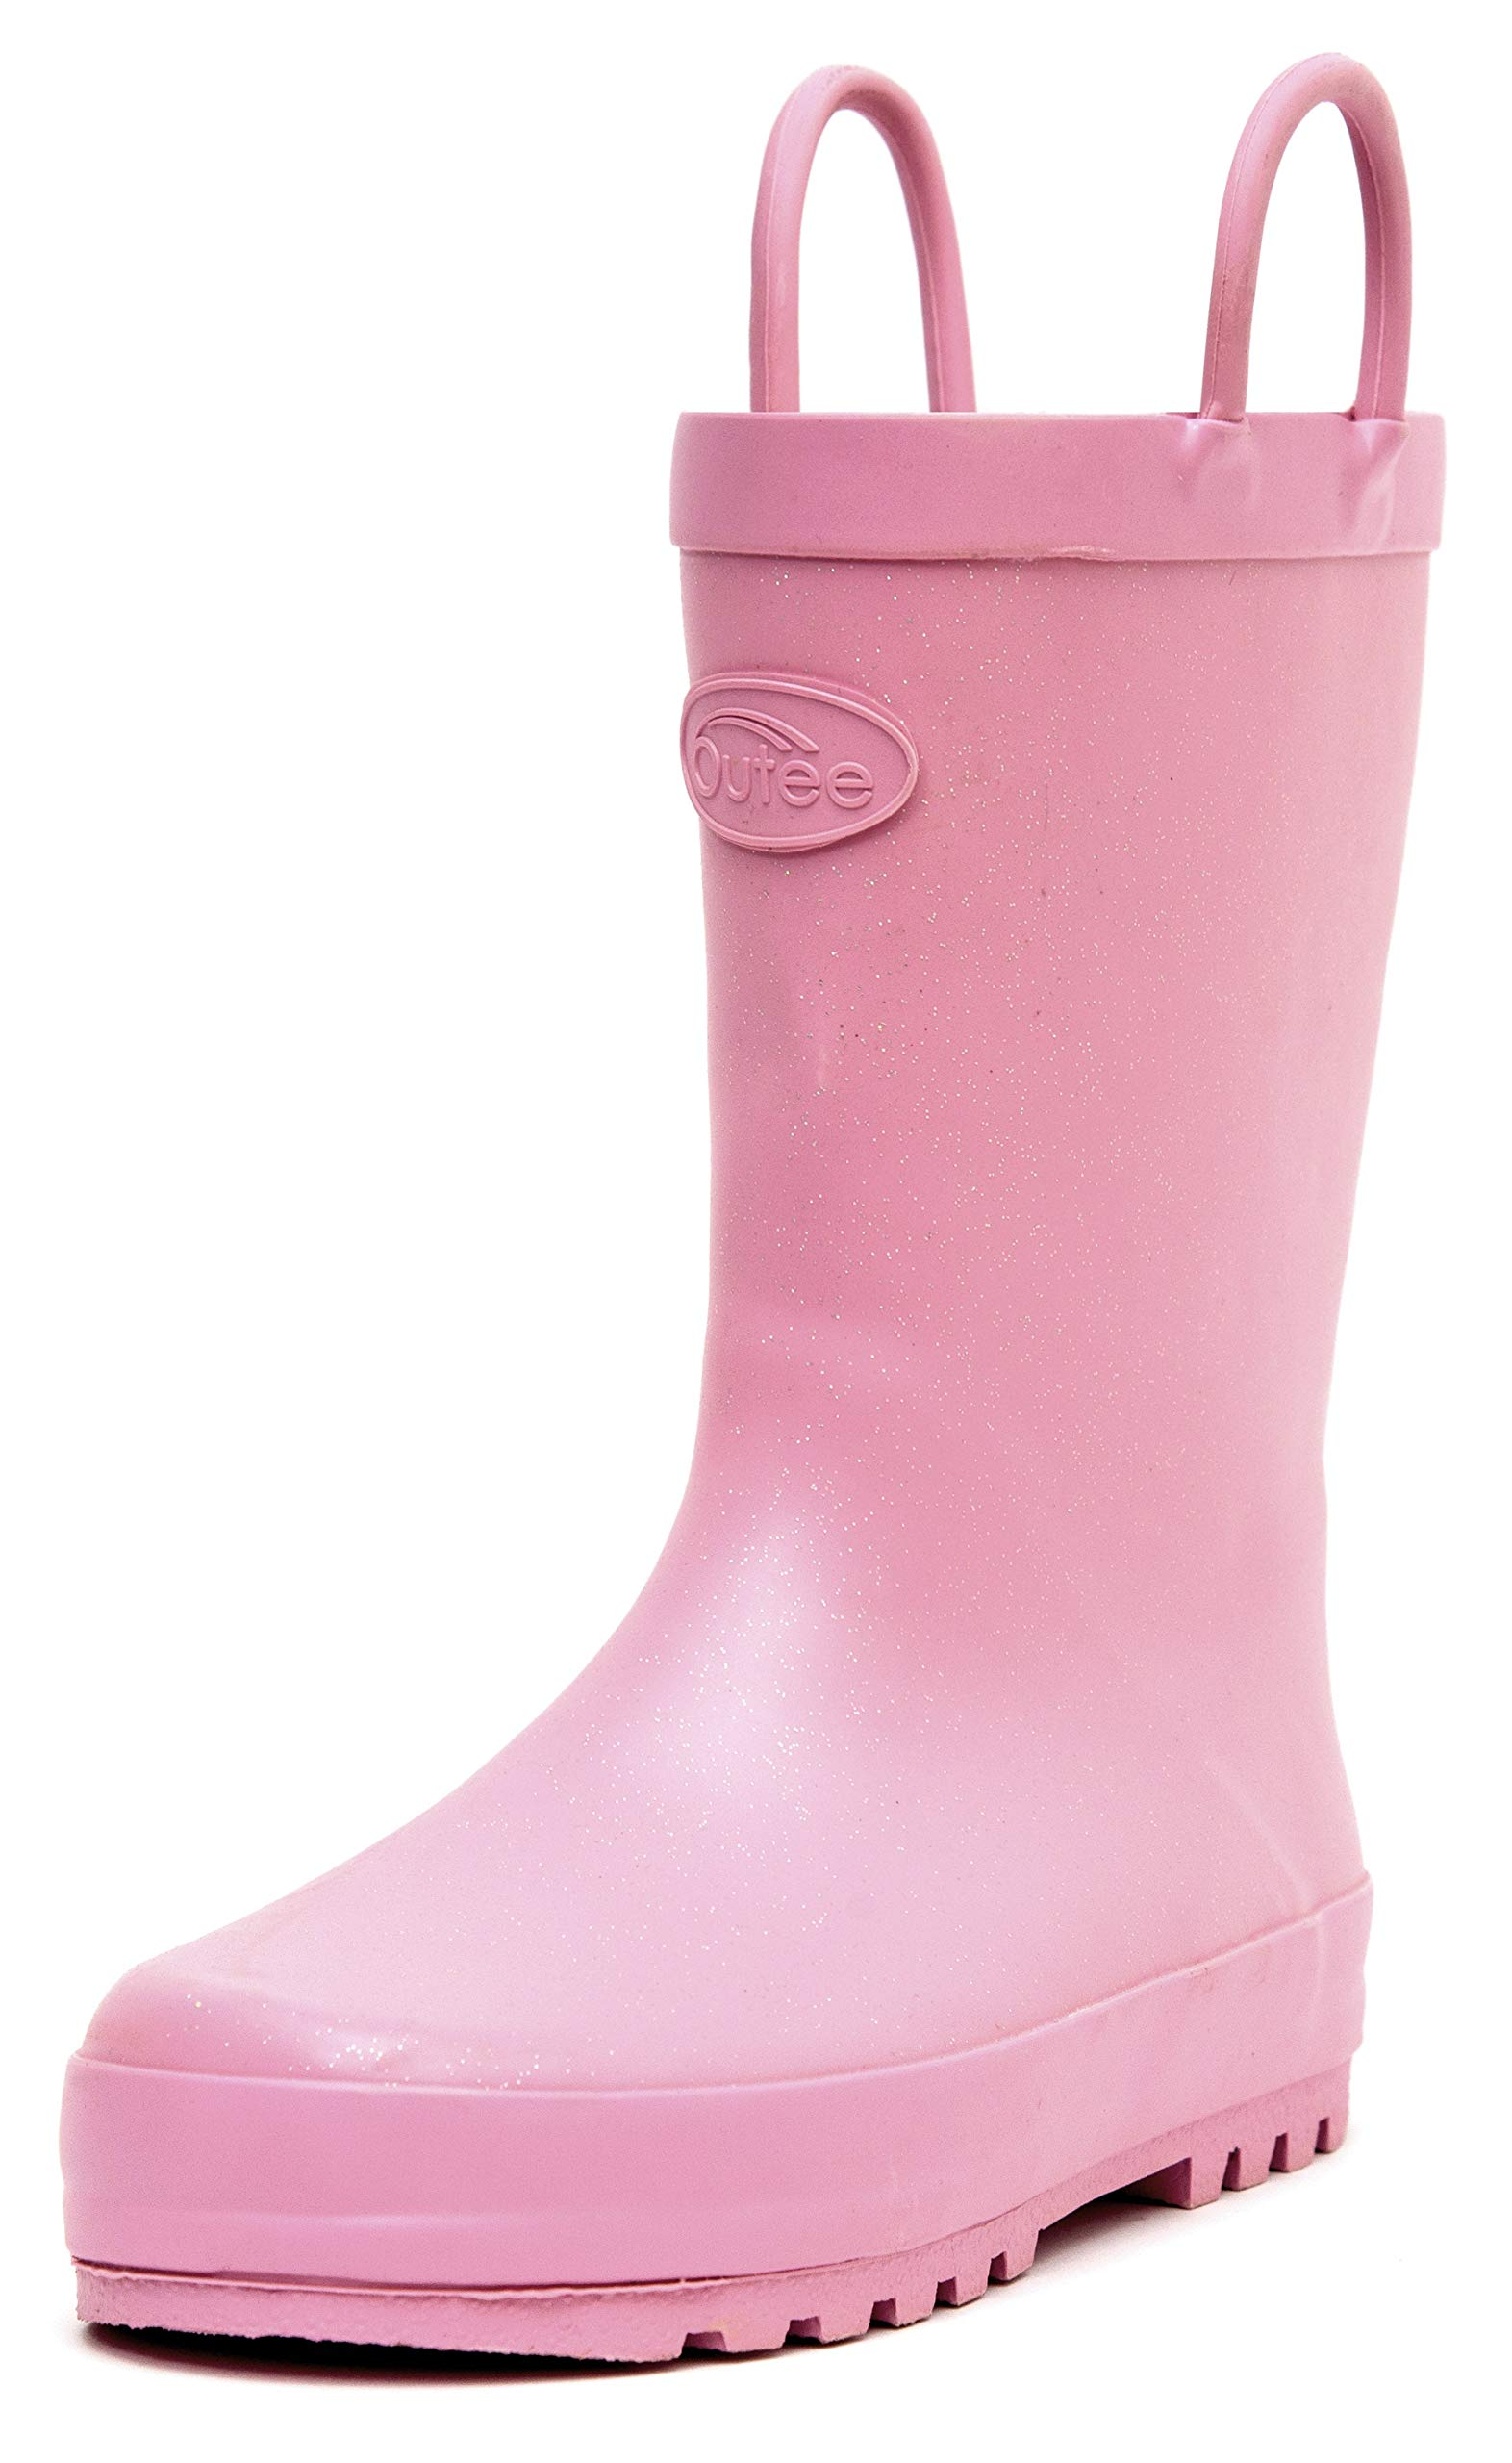 Outee Toddler Girls Kids Rain Boots Rubber Waterproof Shoes Glitter Cute Lovely Funny with Easy On Handles (Size 6,Pink)